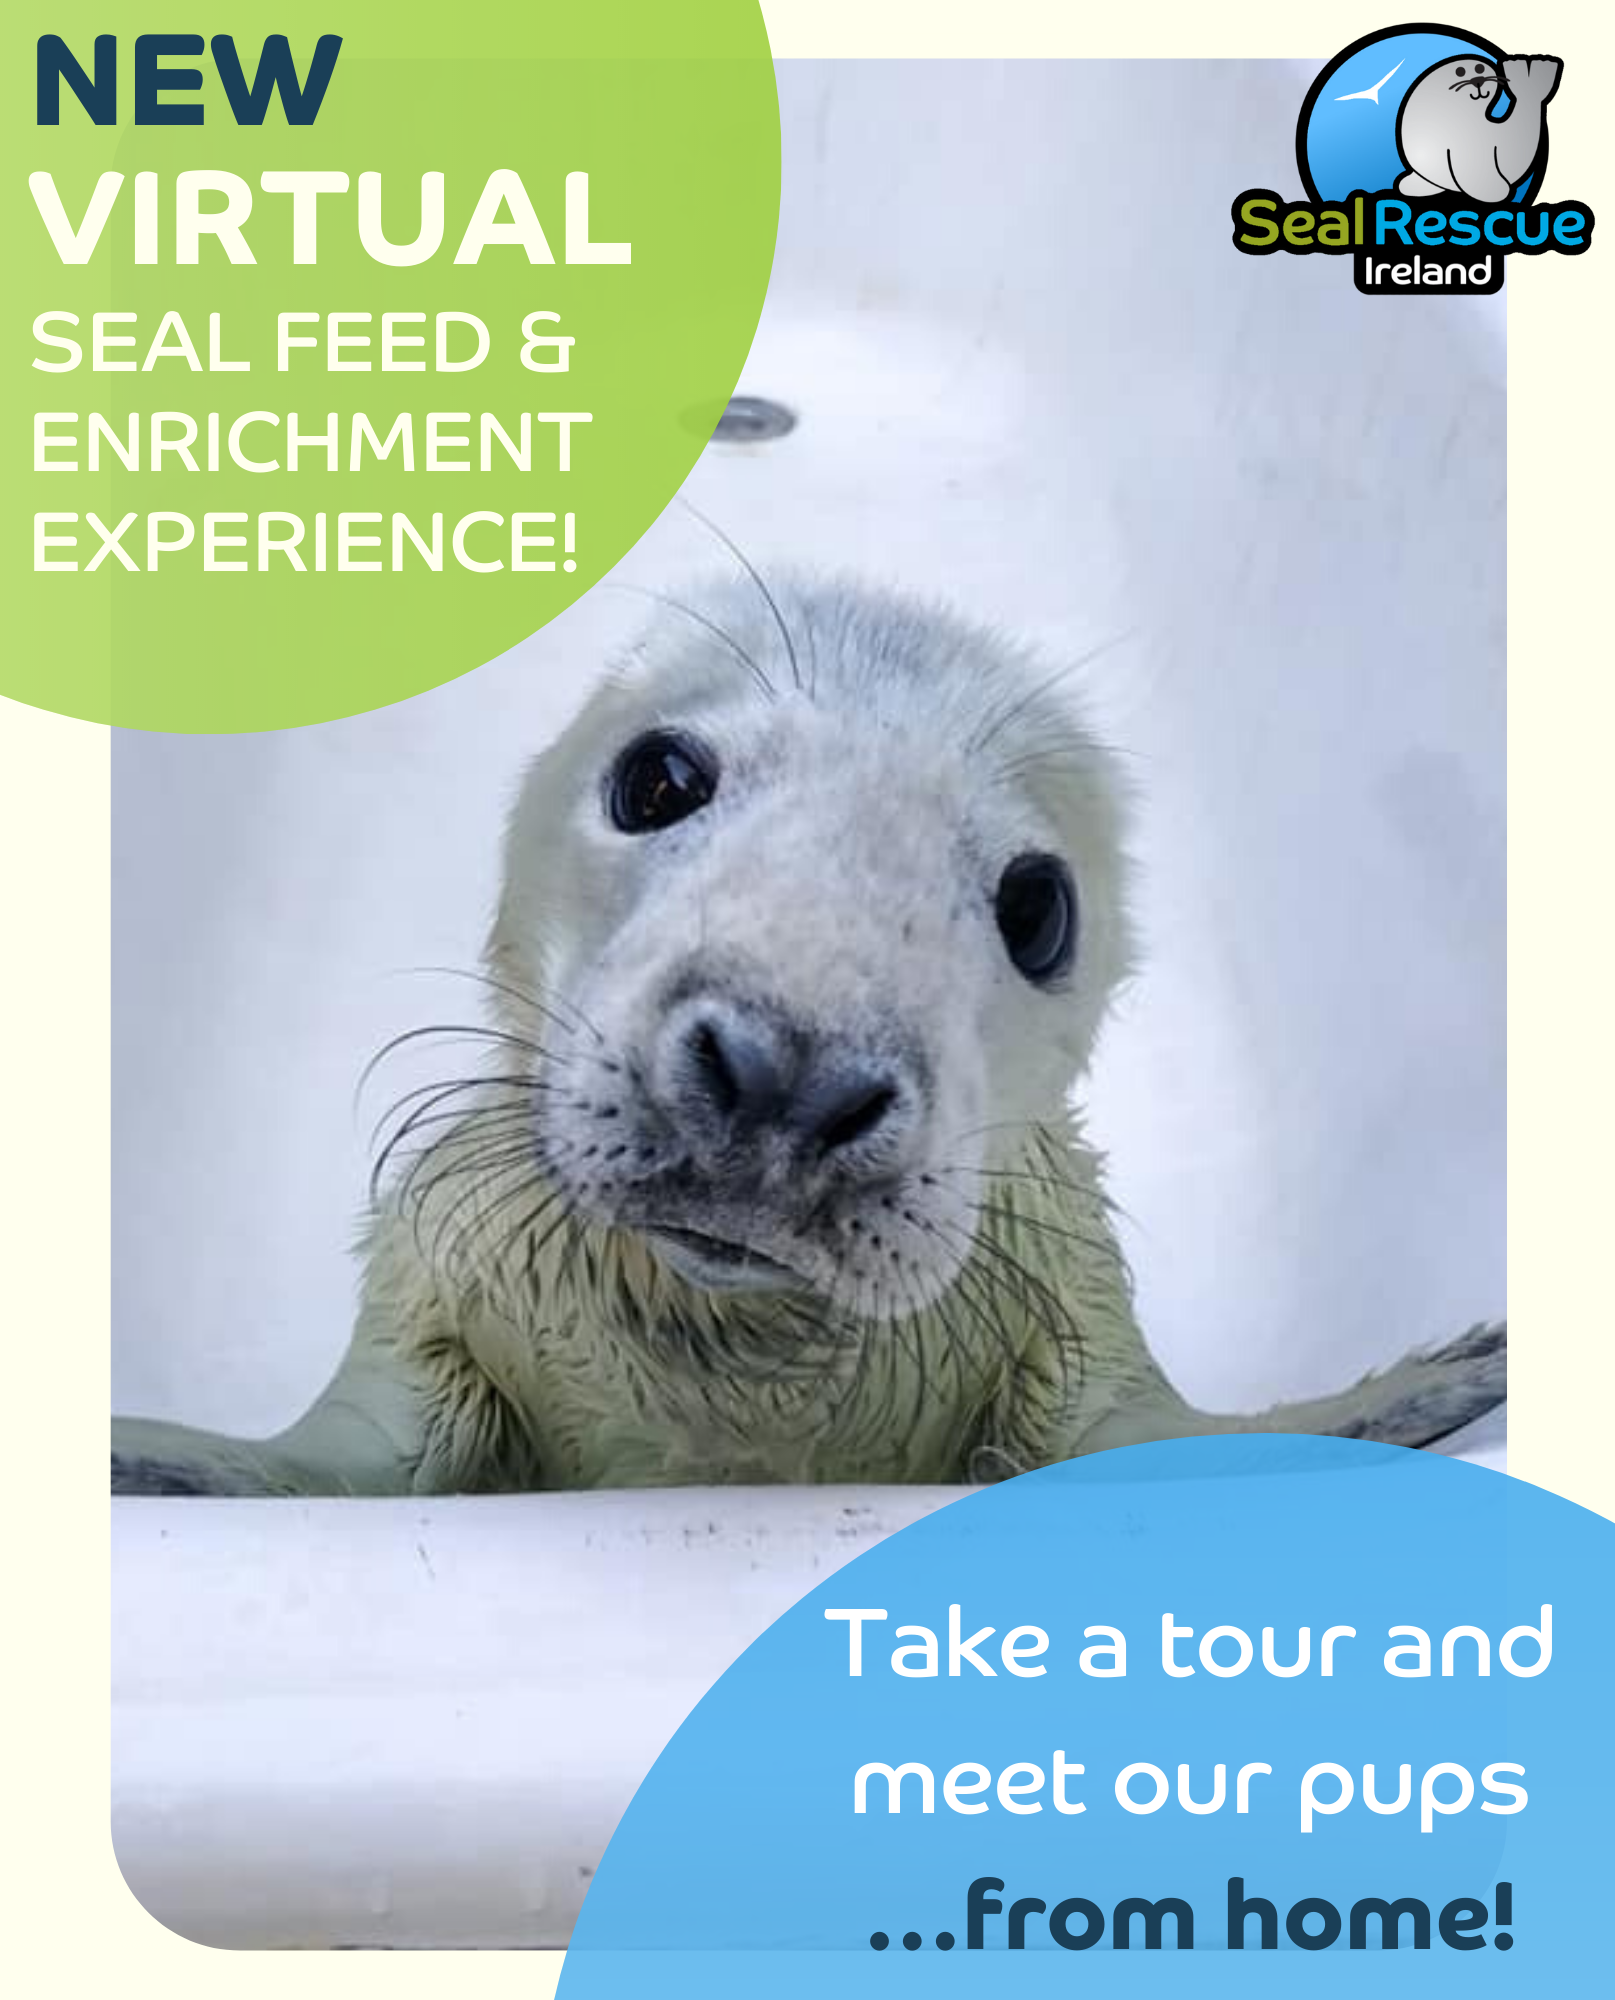 Virtual Seal Feed and Enrichment Experience Poster Seal Rescue Ireland